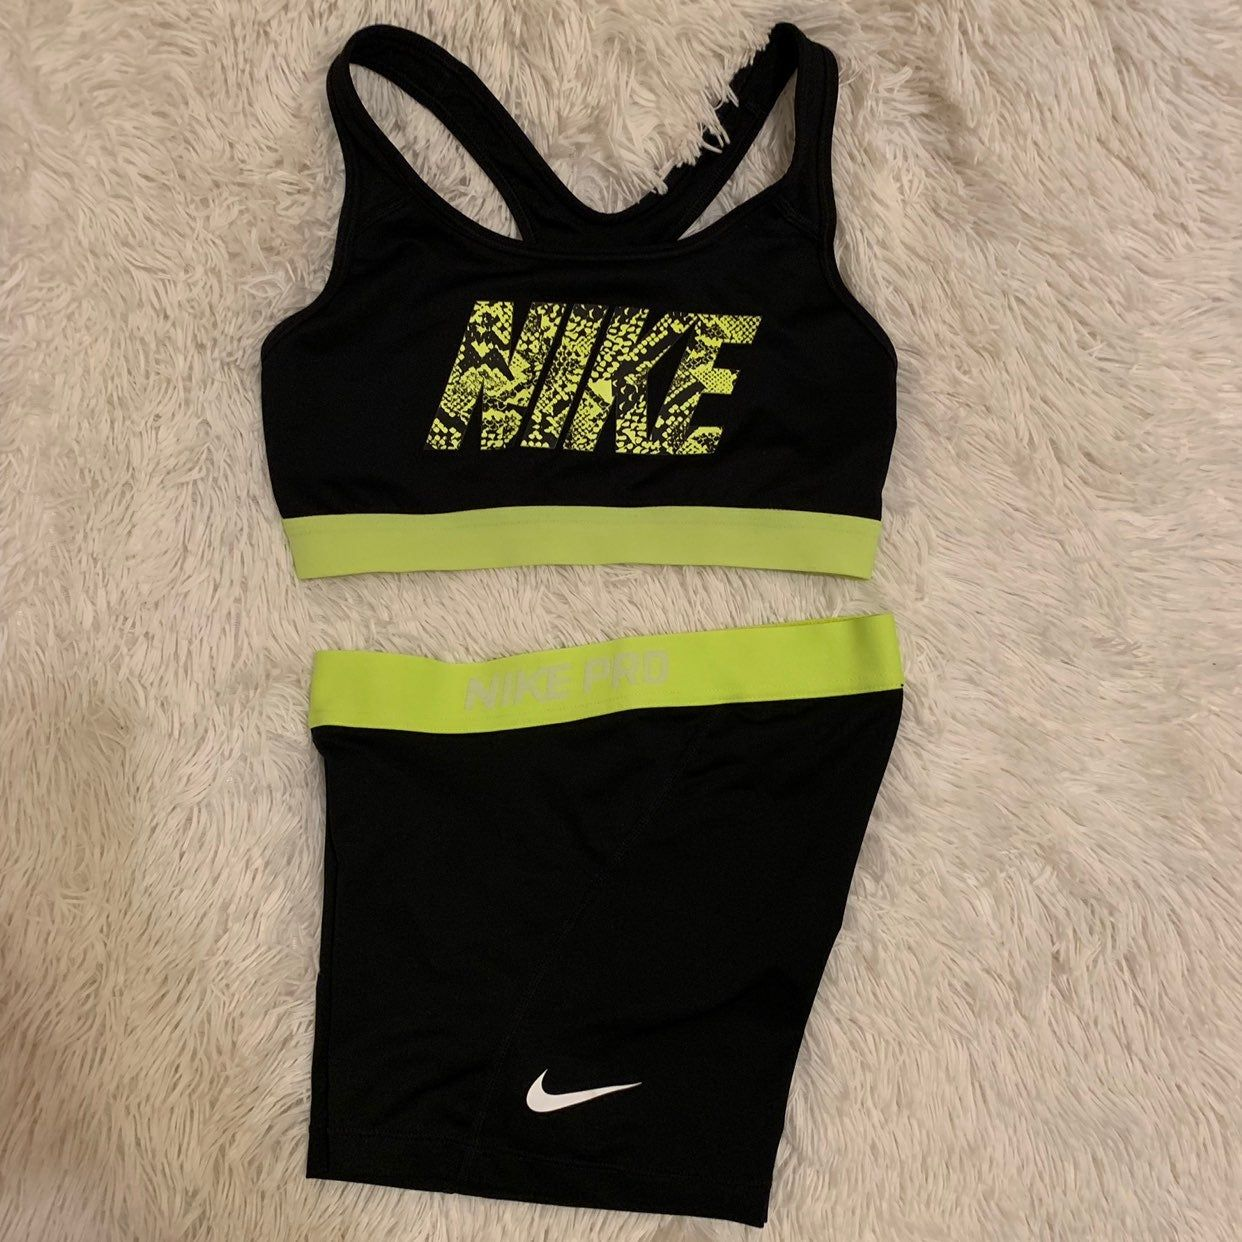 Neon Green Black Nike Pro Short And Sport Bra Set In Good Conditions No Rips Or Stains Size Small Sports Bra Set Black Nikes Nike Pro Shorts